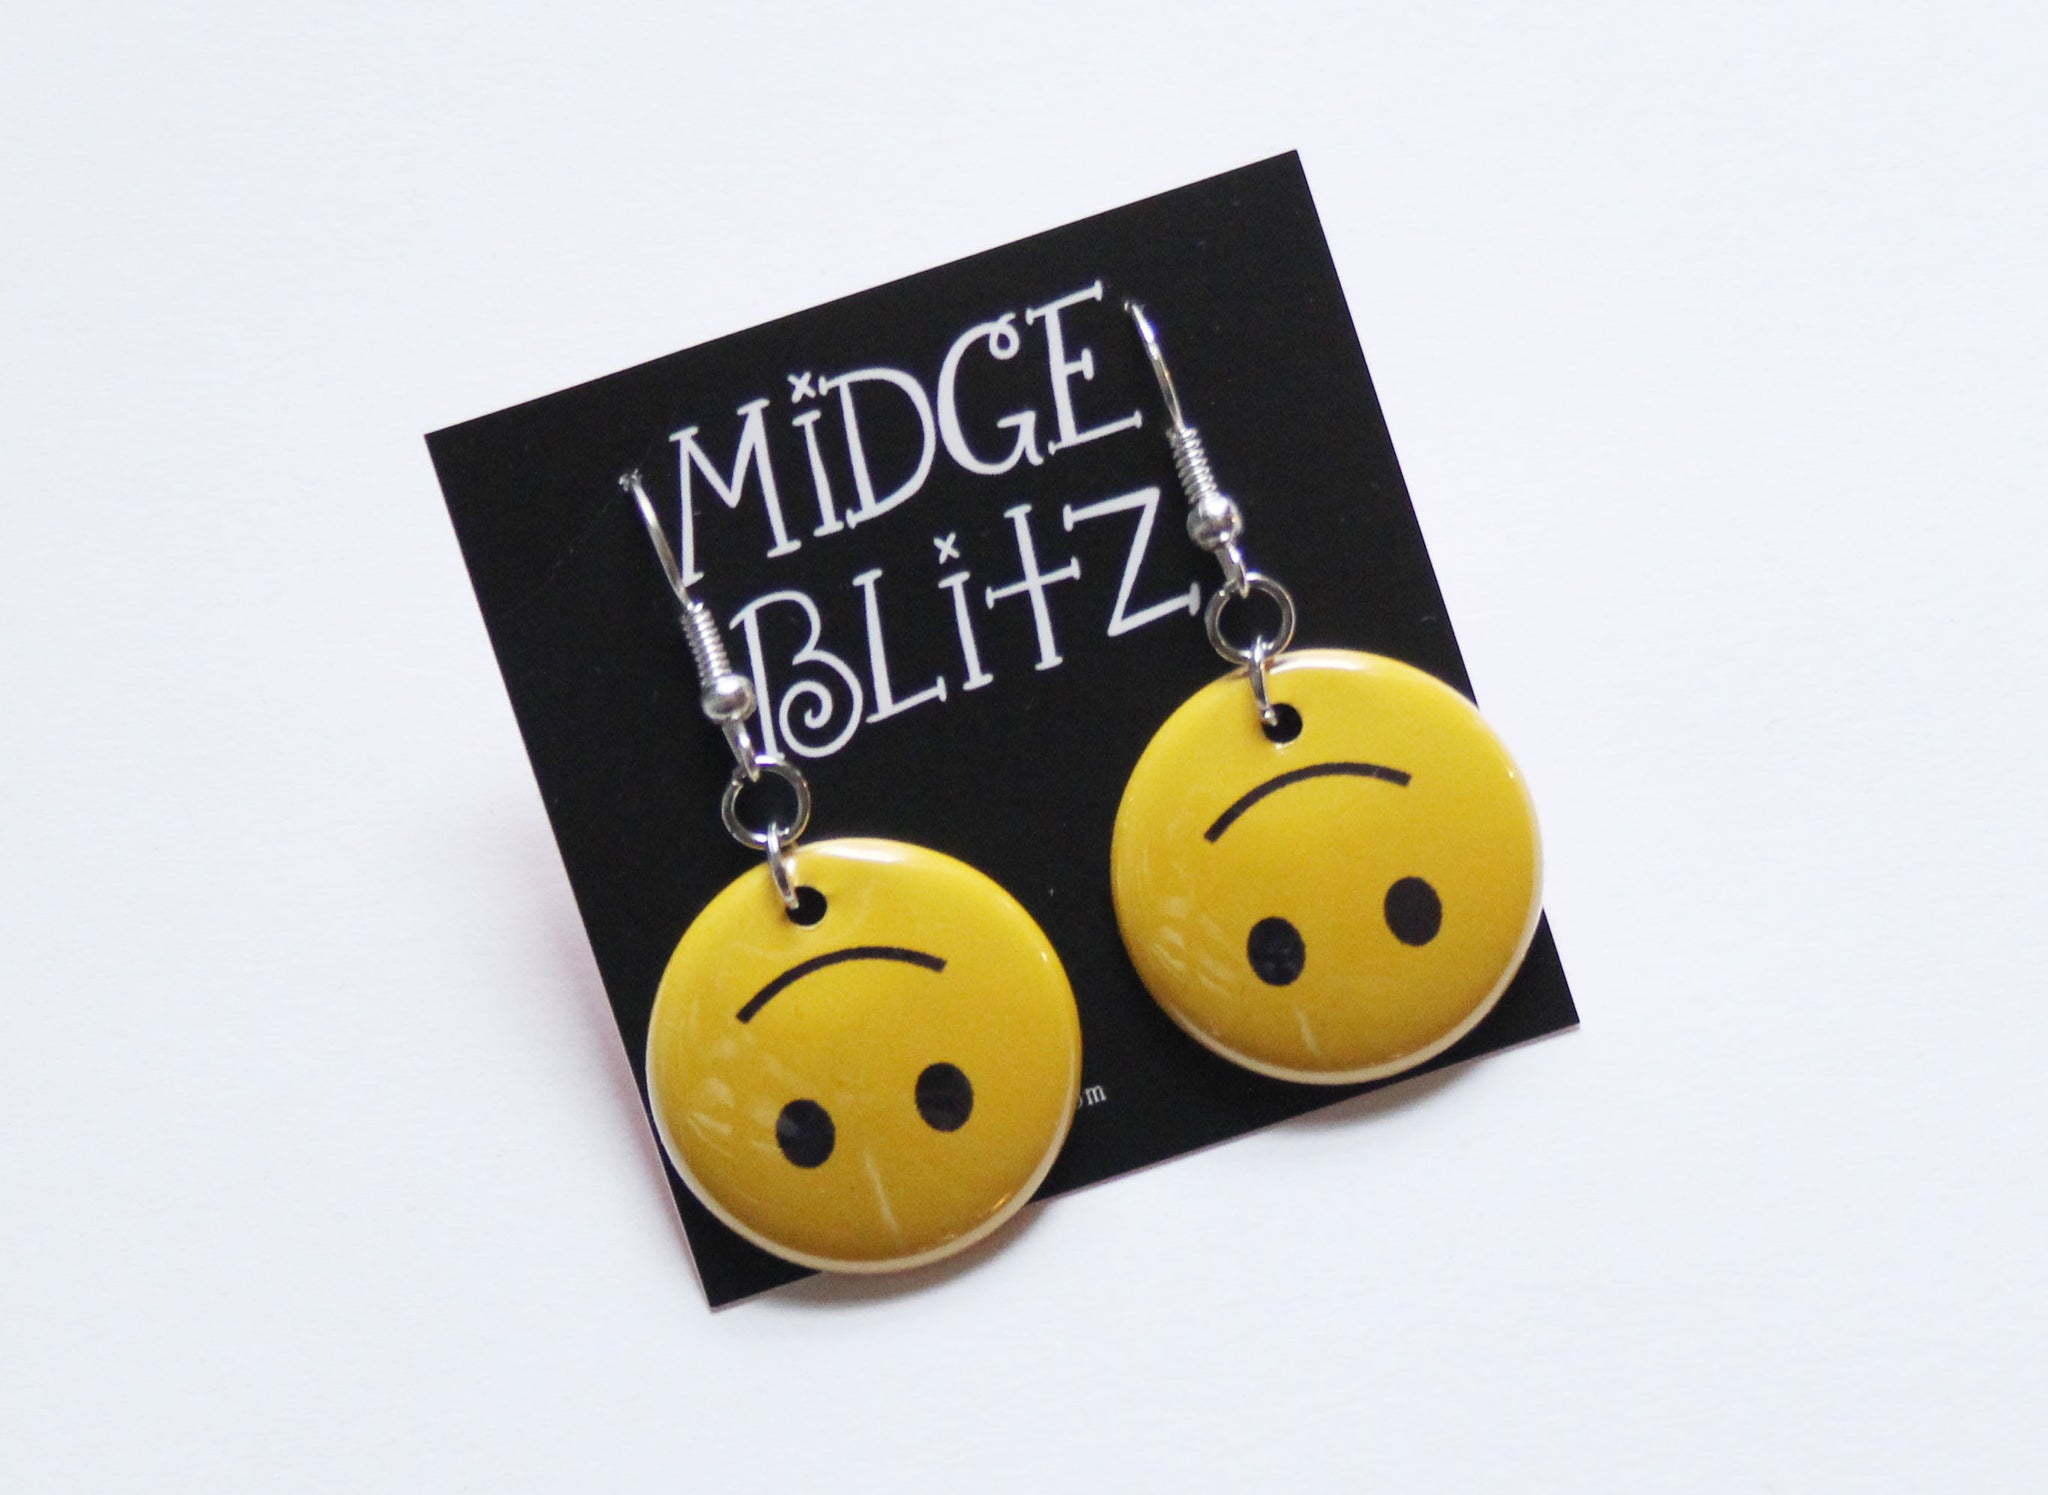 Upside-down Smiley Face Earrings